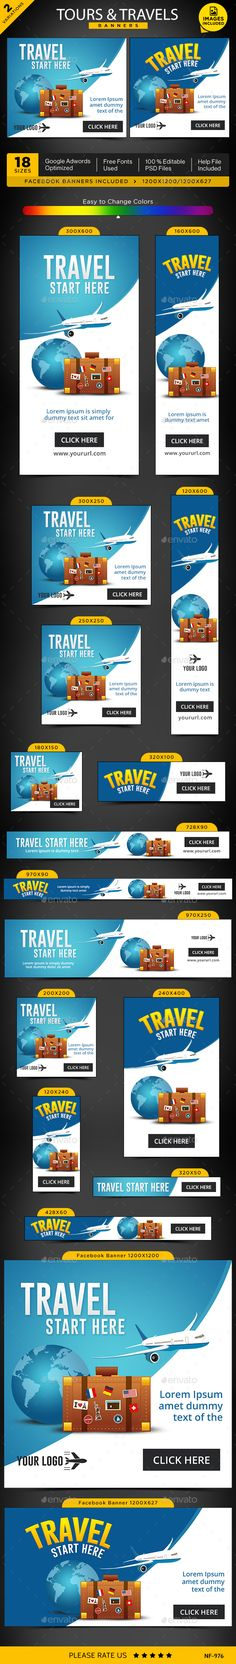 Tours & Travels Web Banners Template PSD #design Download: http://graphicriver.net/item/tours-travels-banners/14375409?ref=ksioks